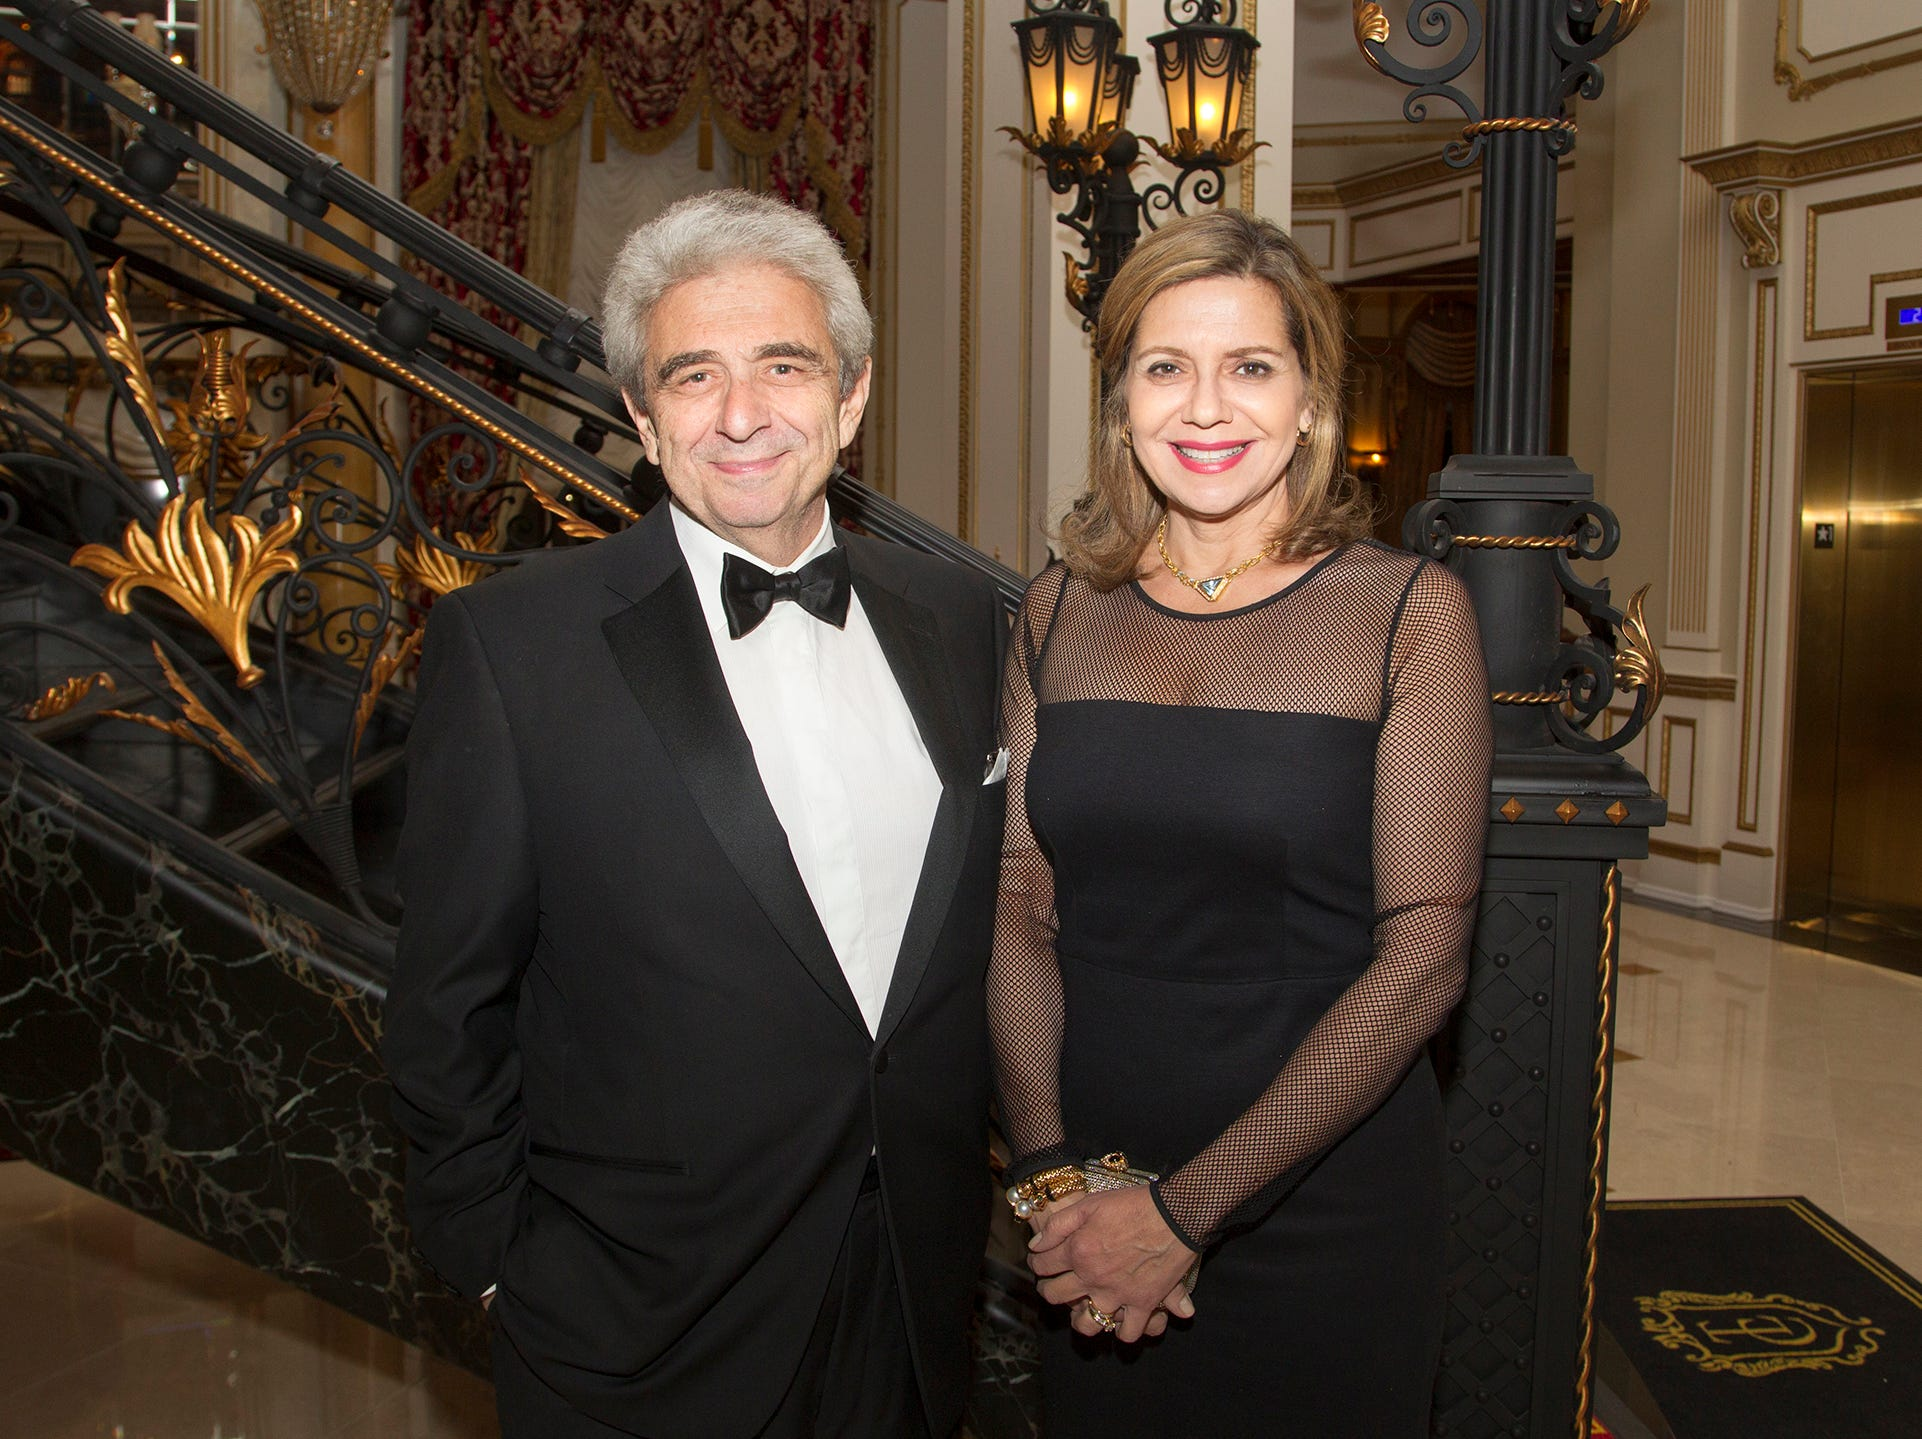 Rashid and Rola Baddoura. The 72nd Annual Valley Ball gala at The Legacy Castle in Pompton Plains. 11/16/2018